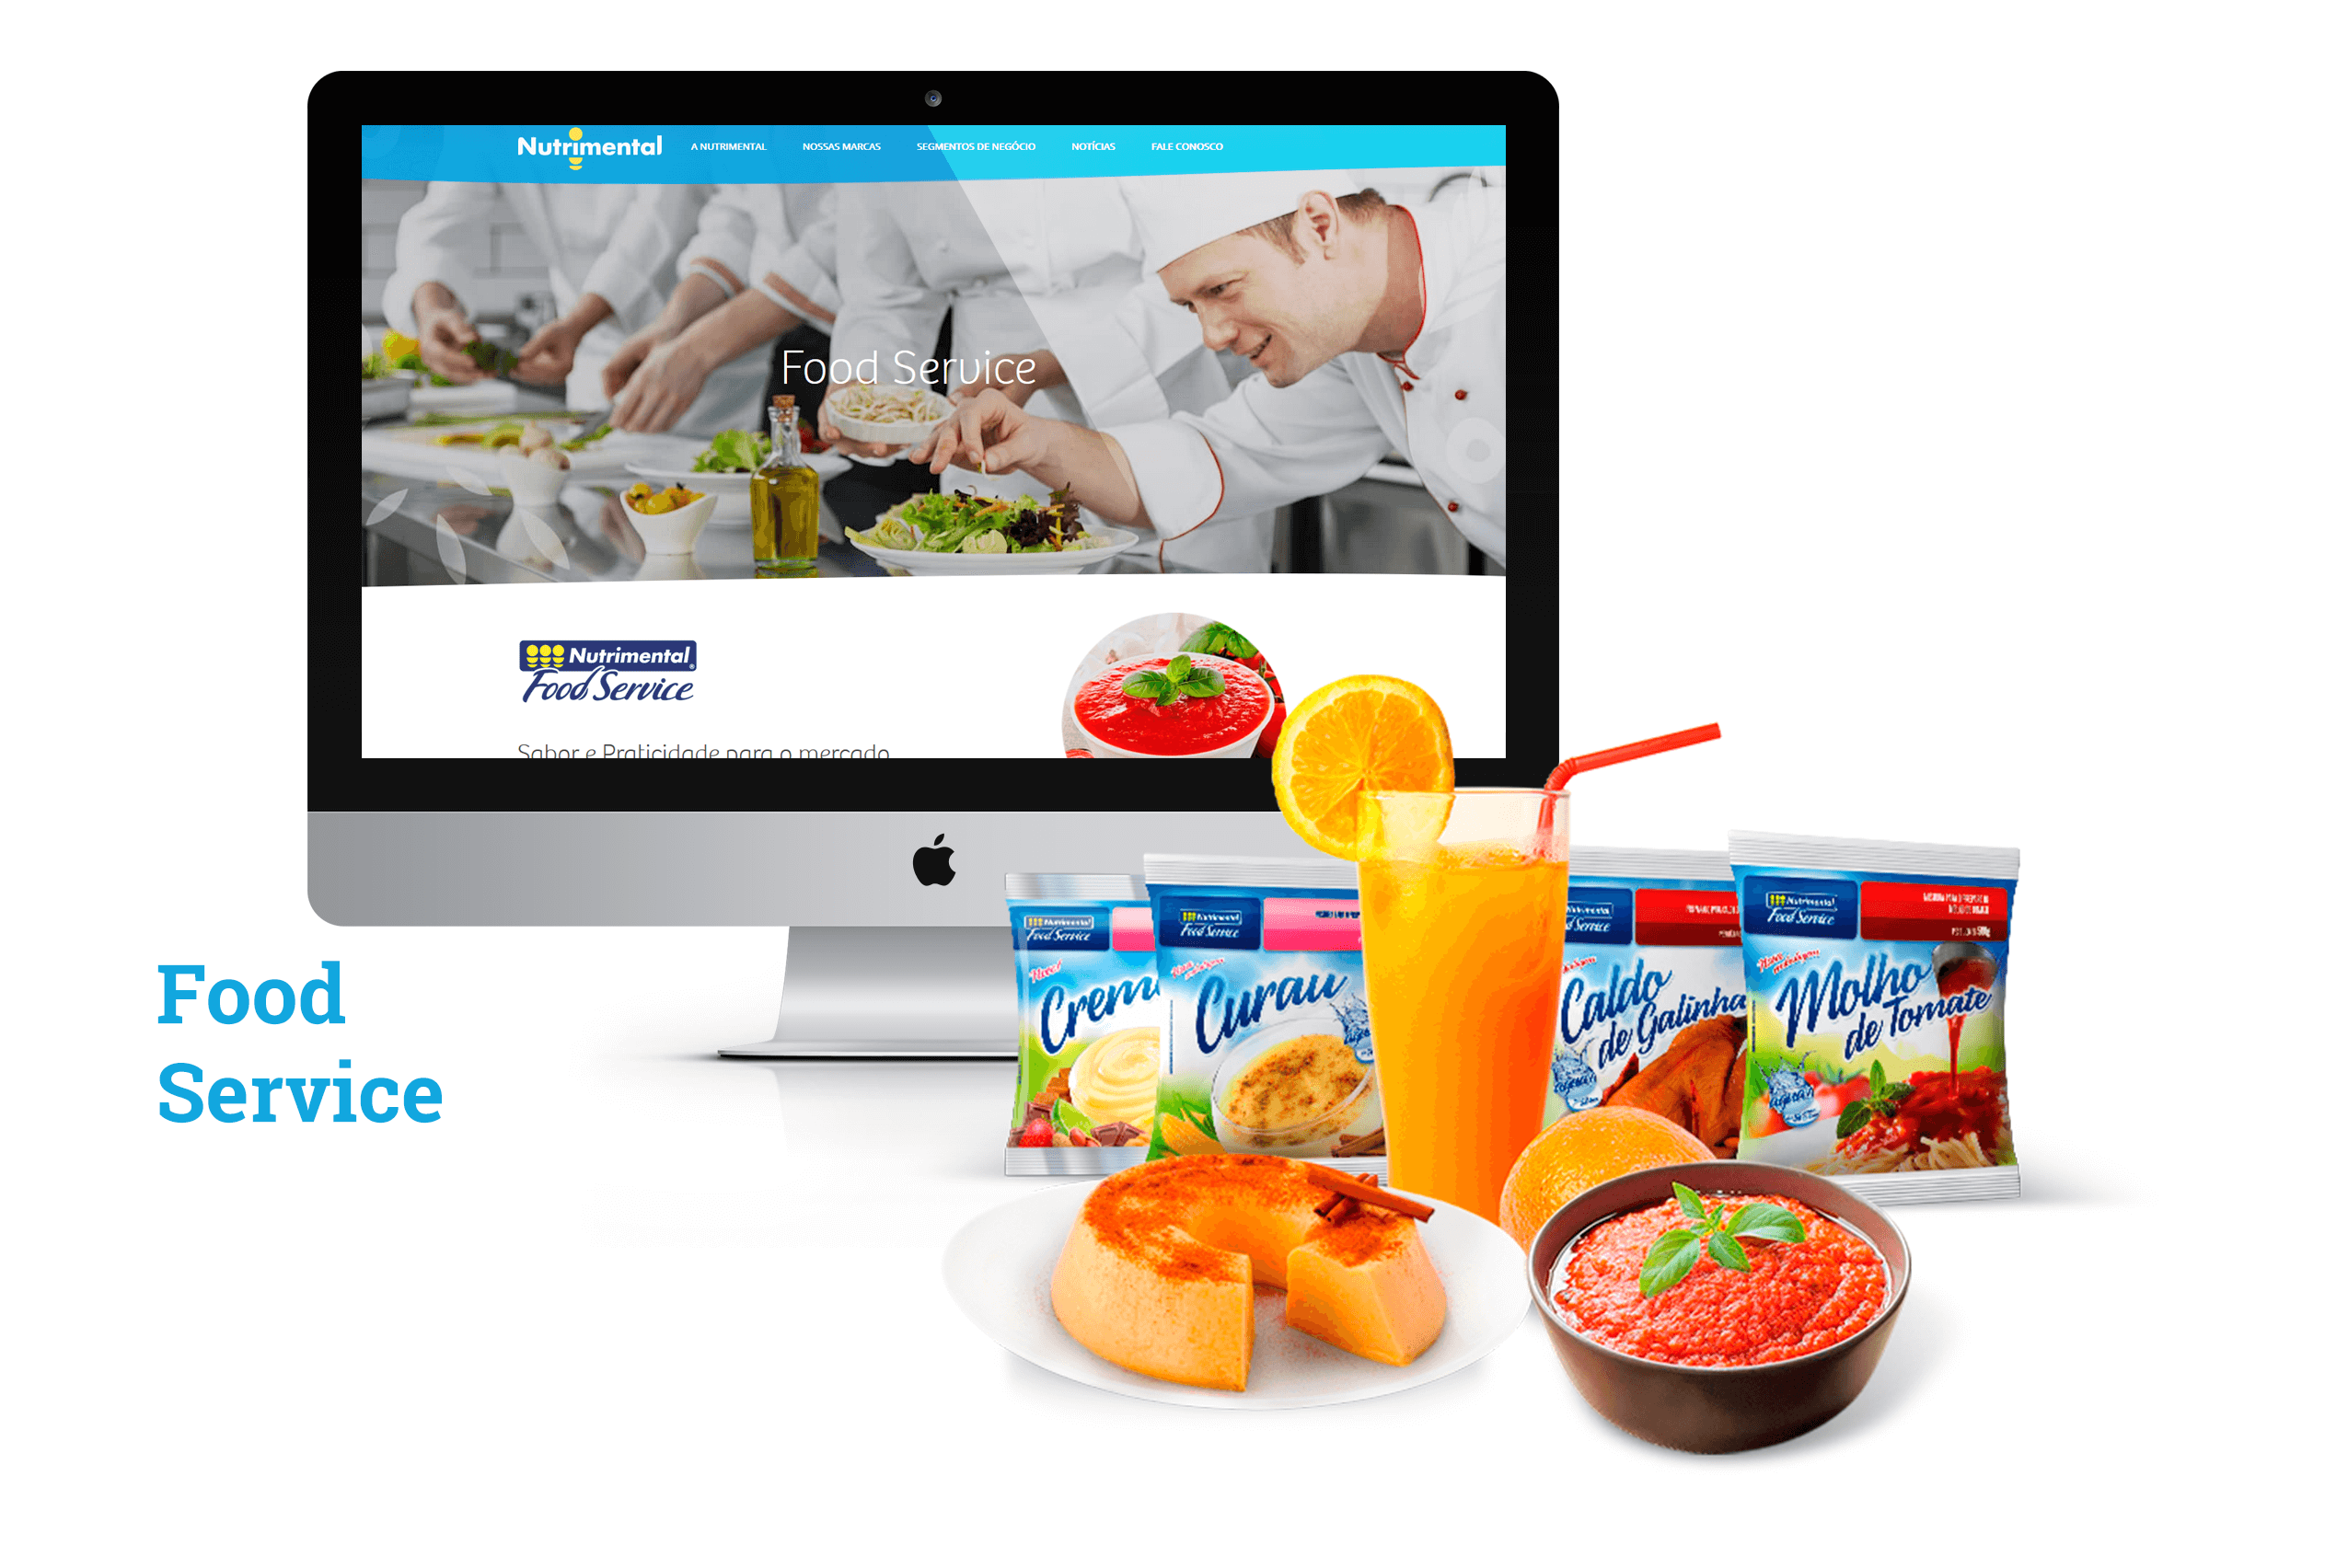 SITE NUTRIMENTAL - FOOD SERVICE - PONTODESIGN